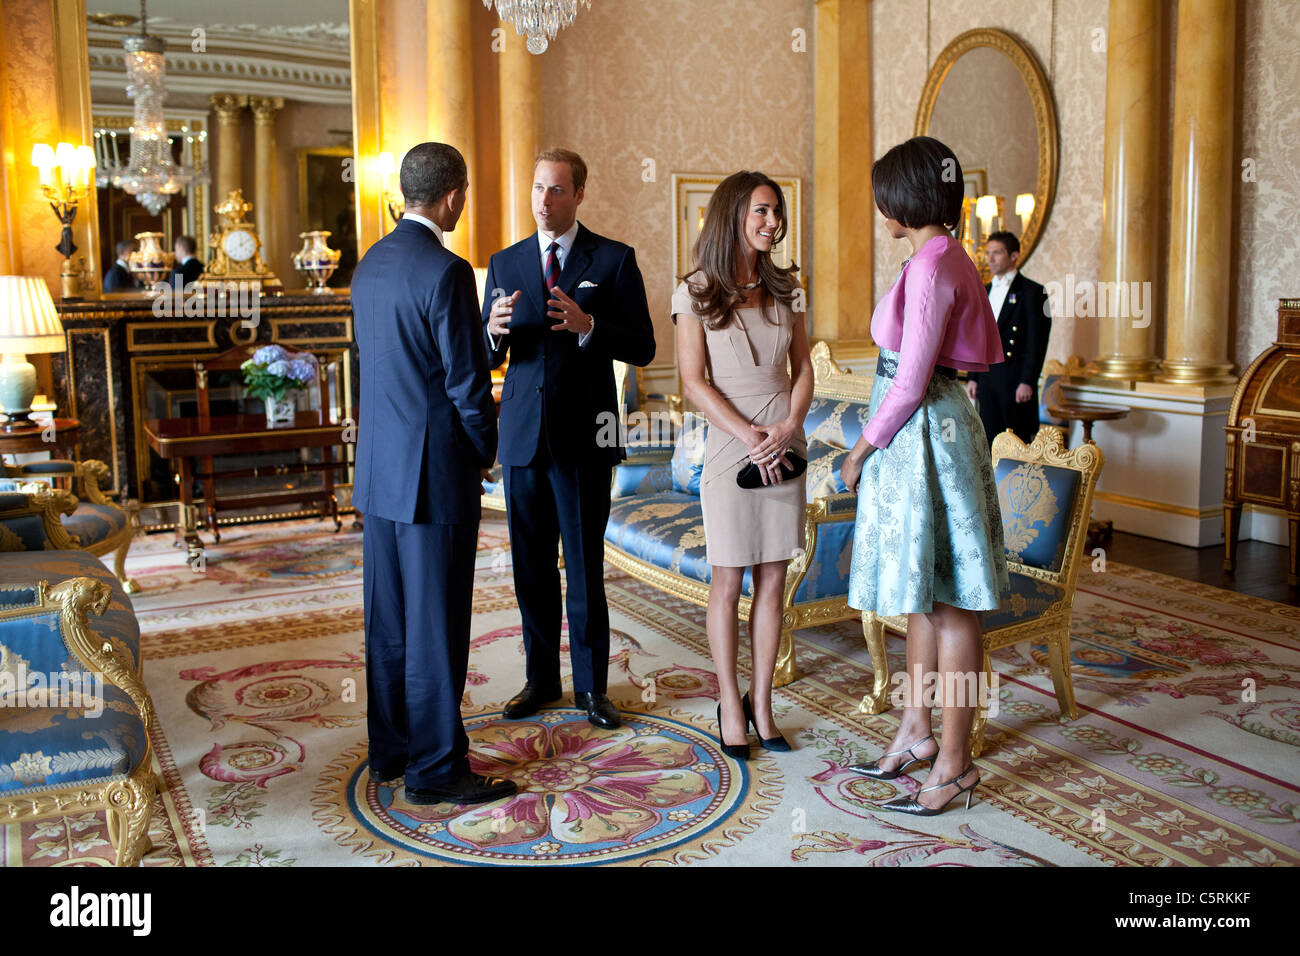 President Barack Obama and First Lady Michelle Obama talk with the Duke and Duchess of Cambridge at Buckingham Palace - Stock Image